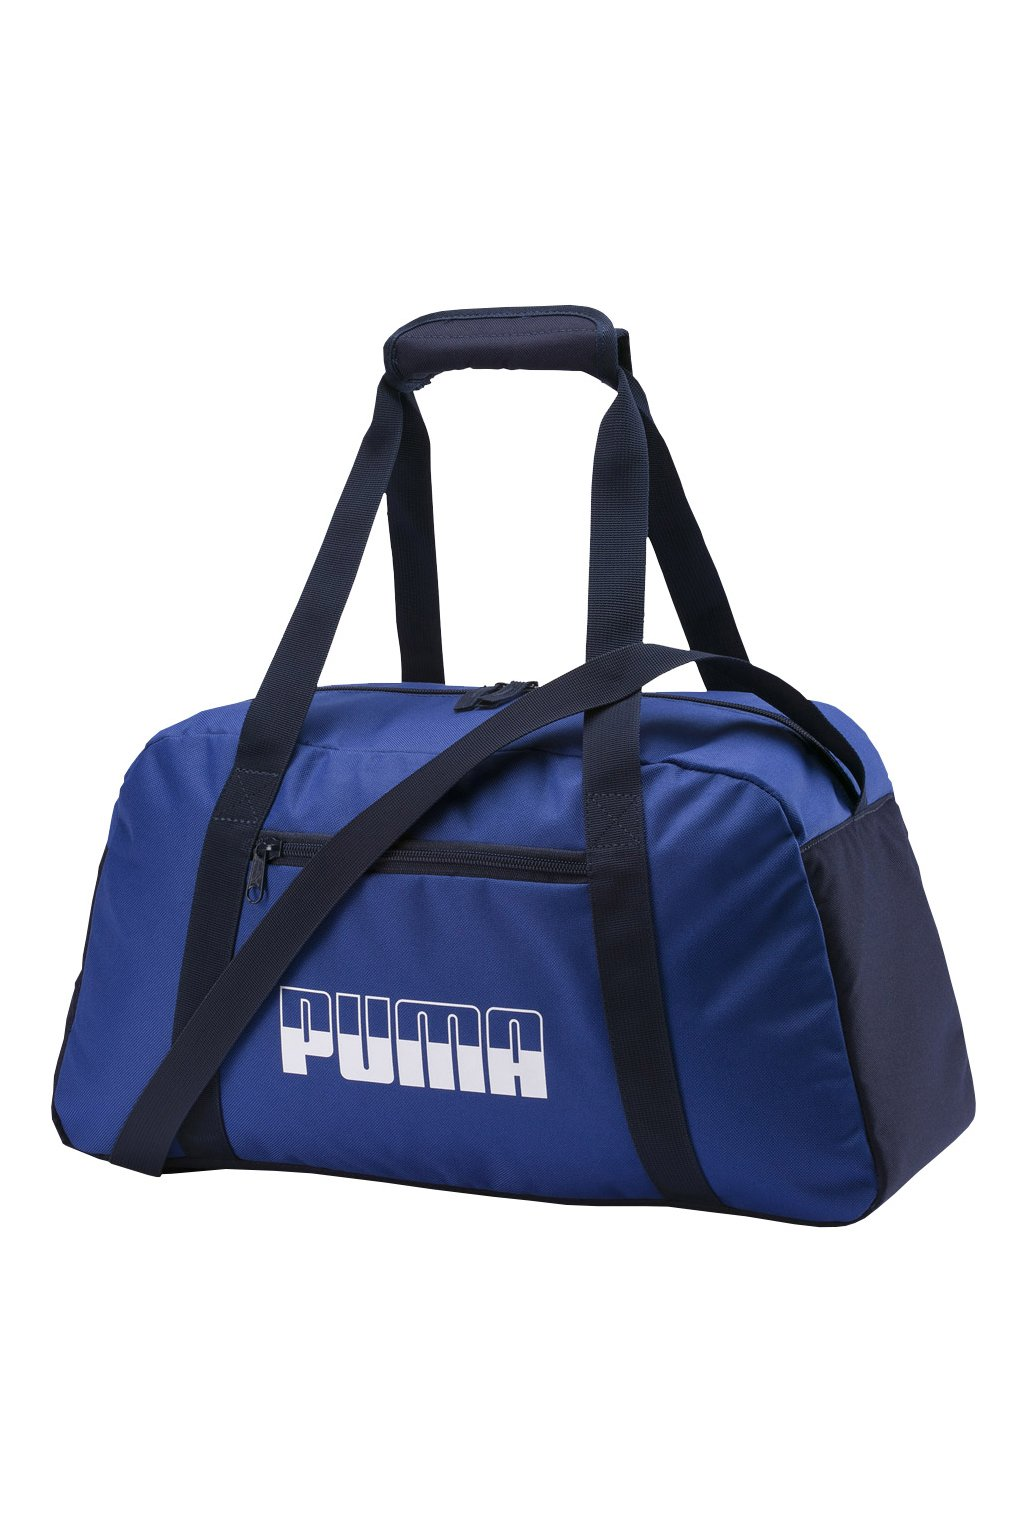 Taška Puma Plus Sports Bag II modrá 076063 09